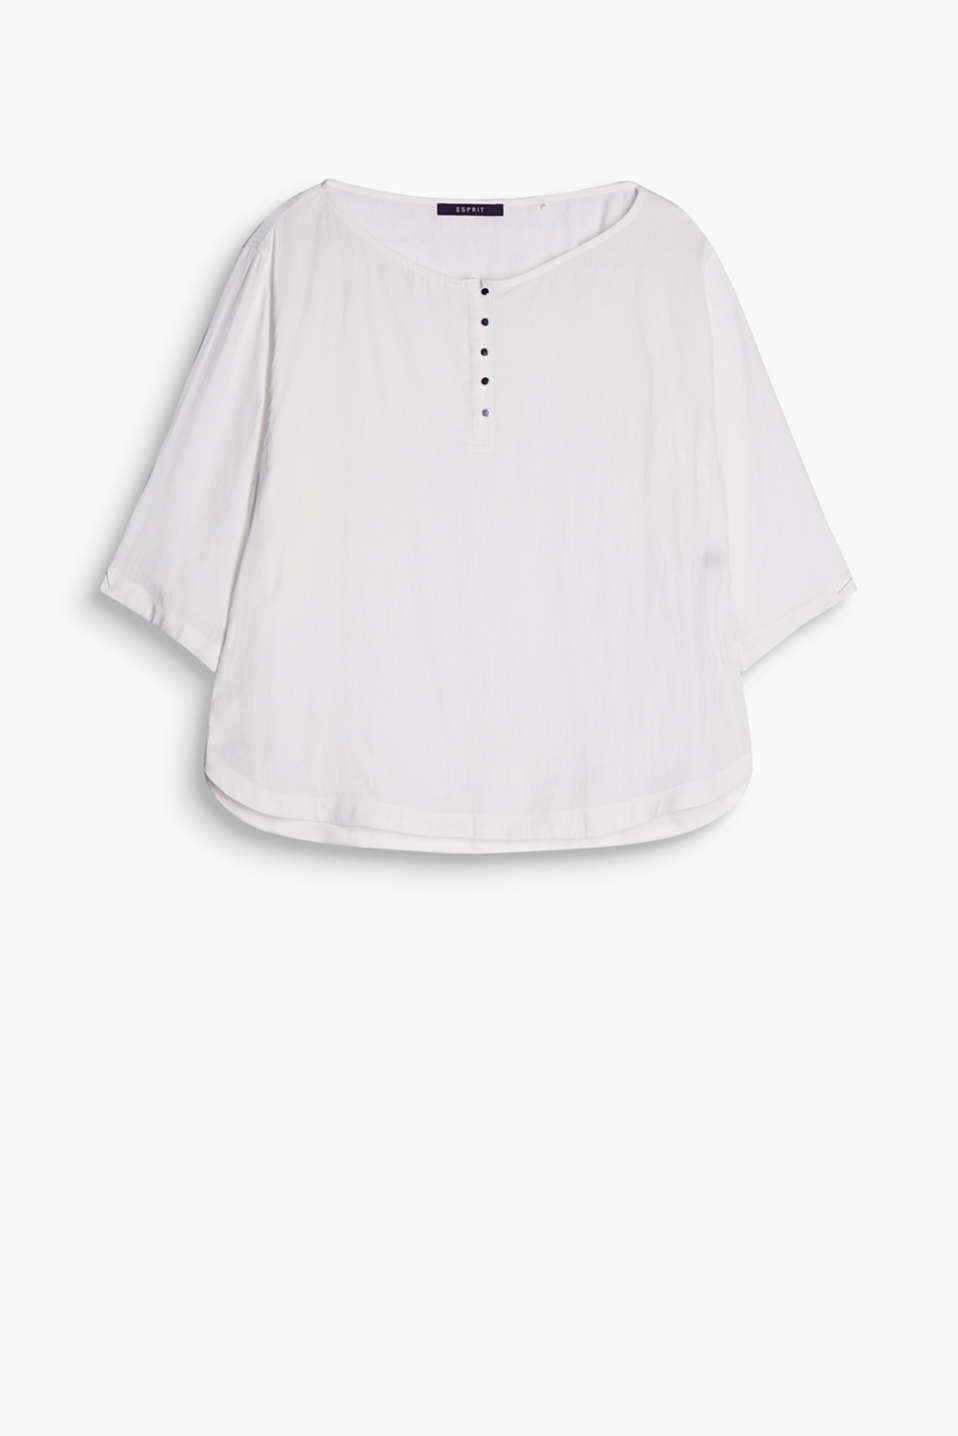 Masculine stripes meet a feminine silhouette: silky blouse with a button placket and batwing sleeves